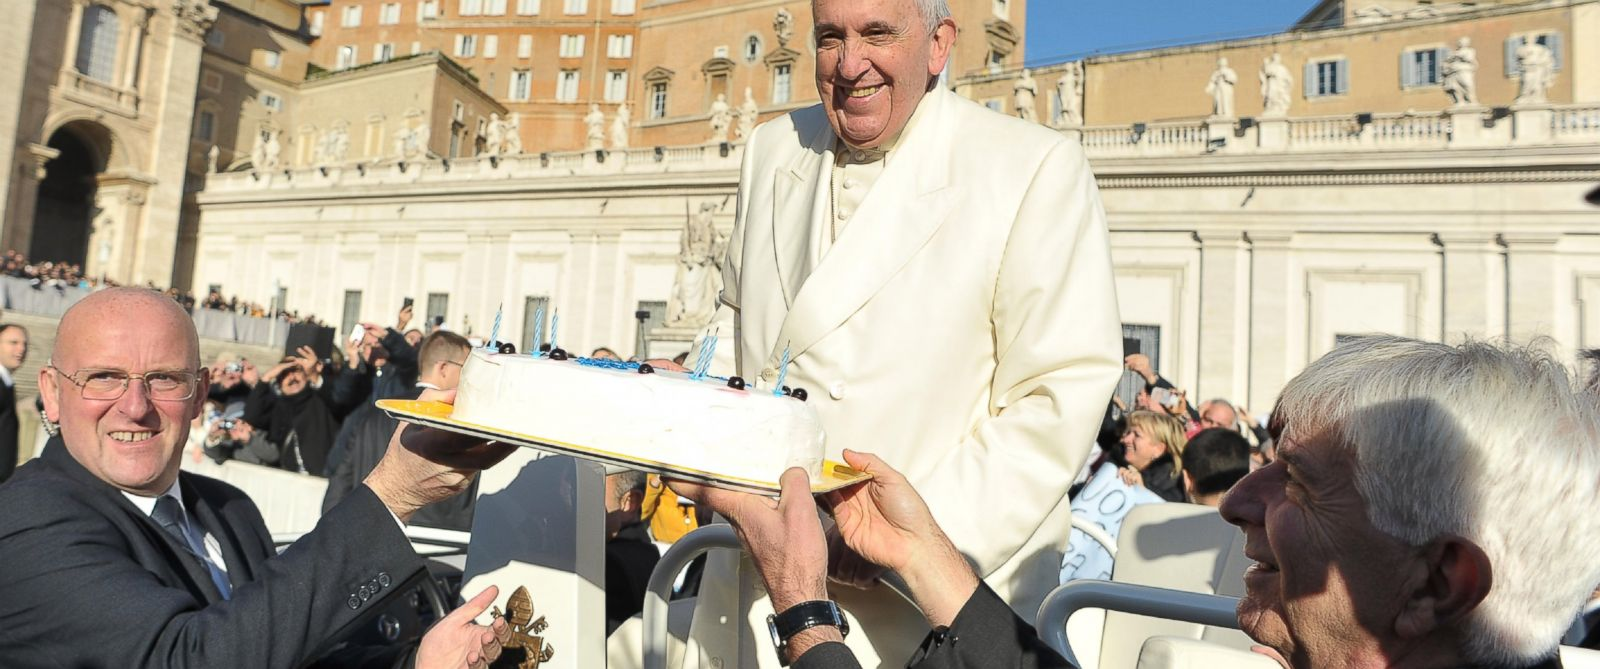 PHOTO: In this photo provided by Vatican newspaper LOsservatore Romano, Pope Francis is presented with a cake during his weekly general audience in St. Peters Square at the Vatican on Dec. 17, 2014.